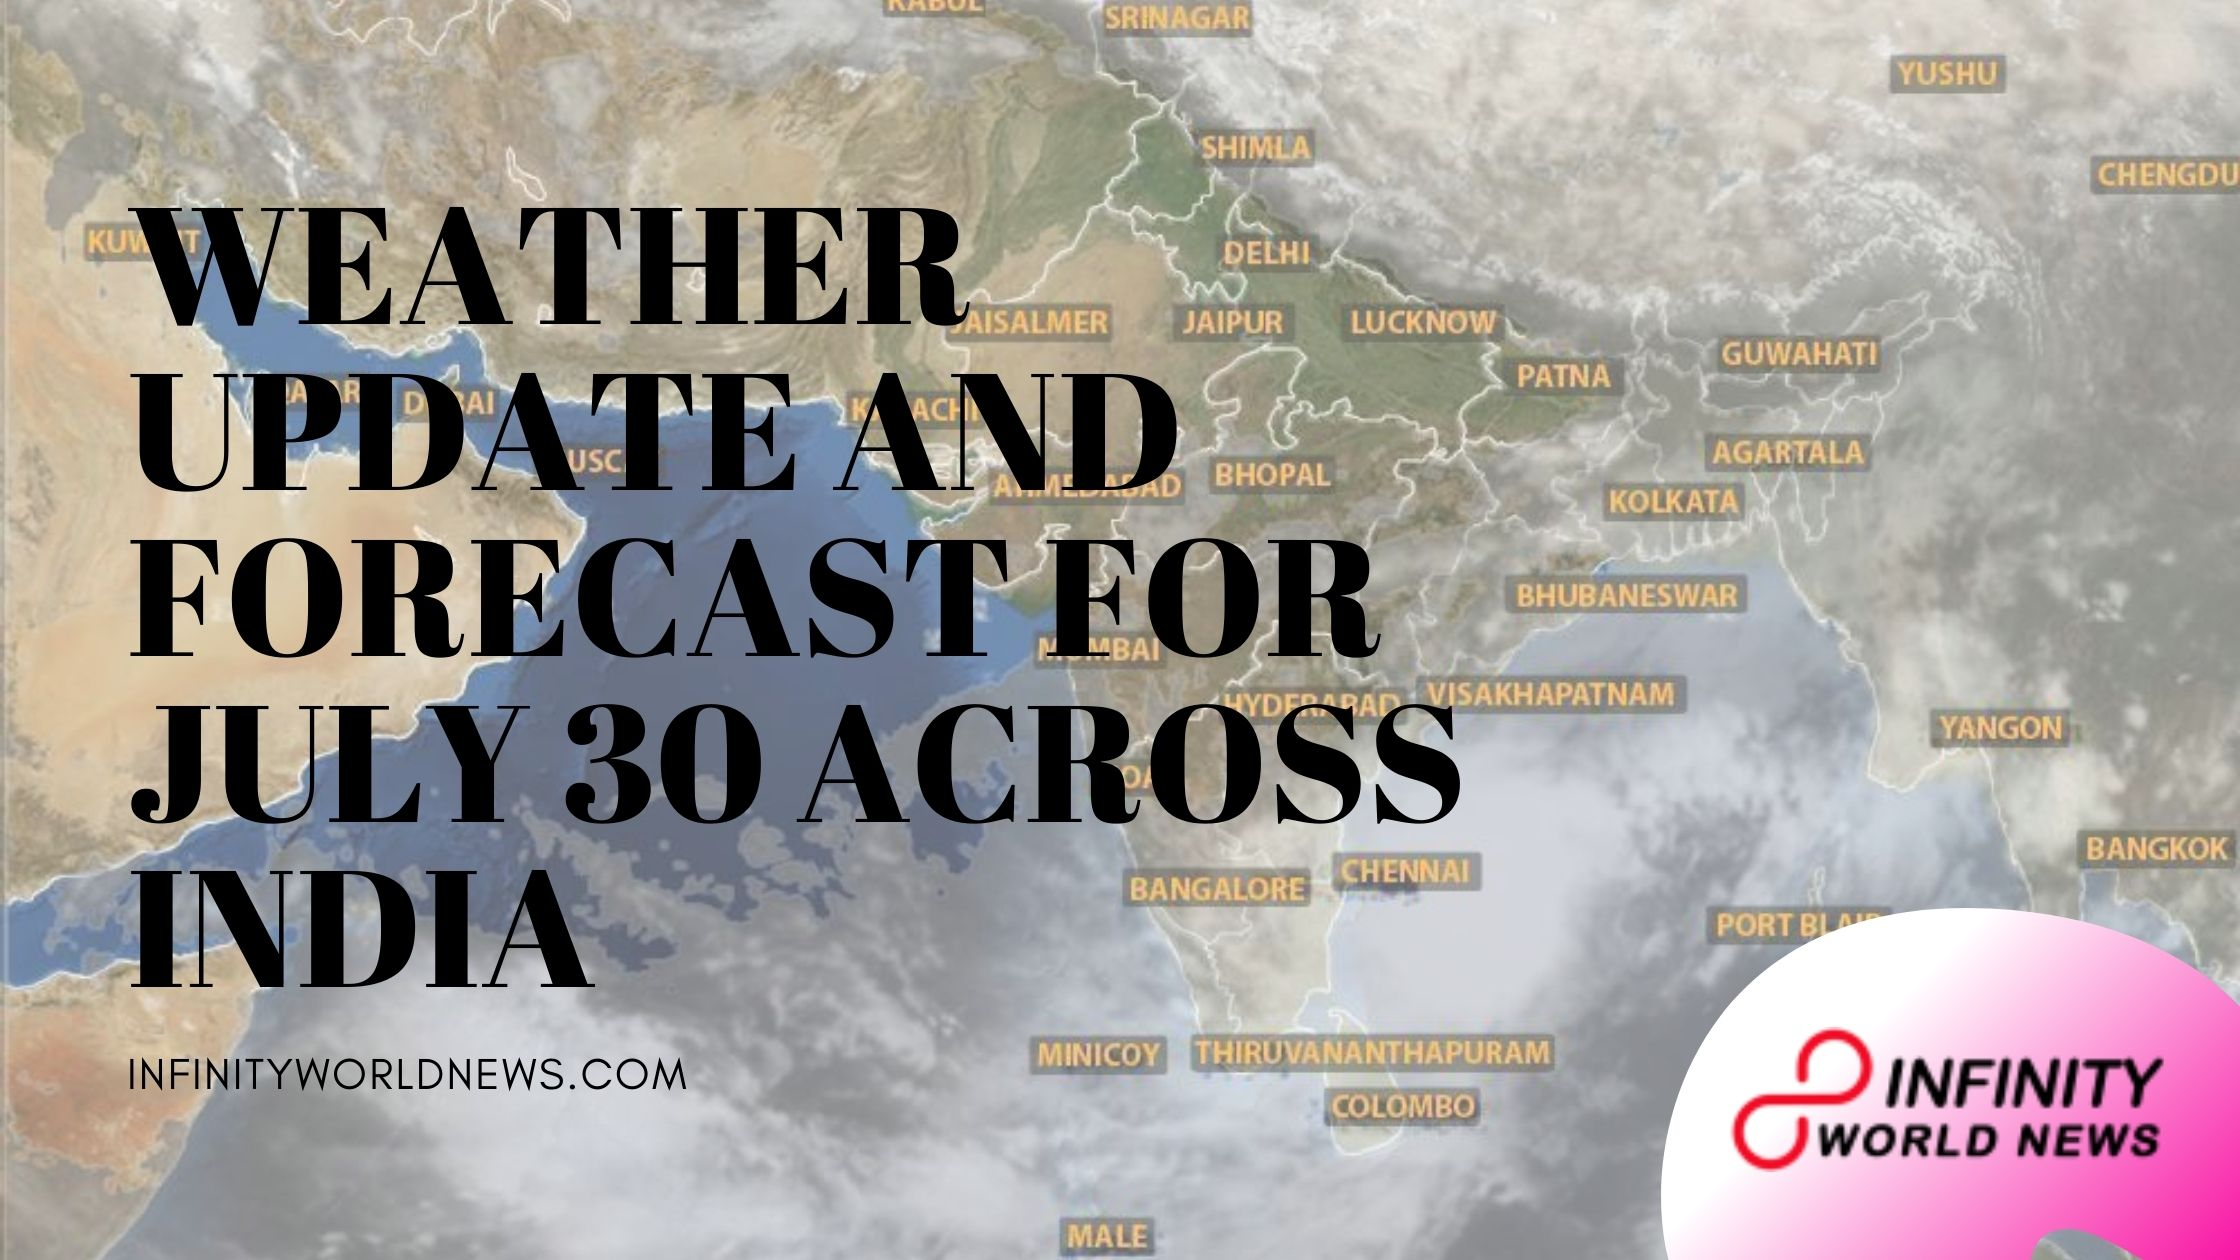 WEATHER UPDATE AND FORECAST FOR JULY 30 ACROSS INDIA